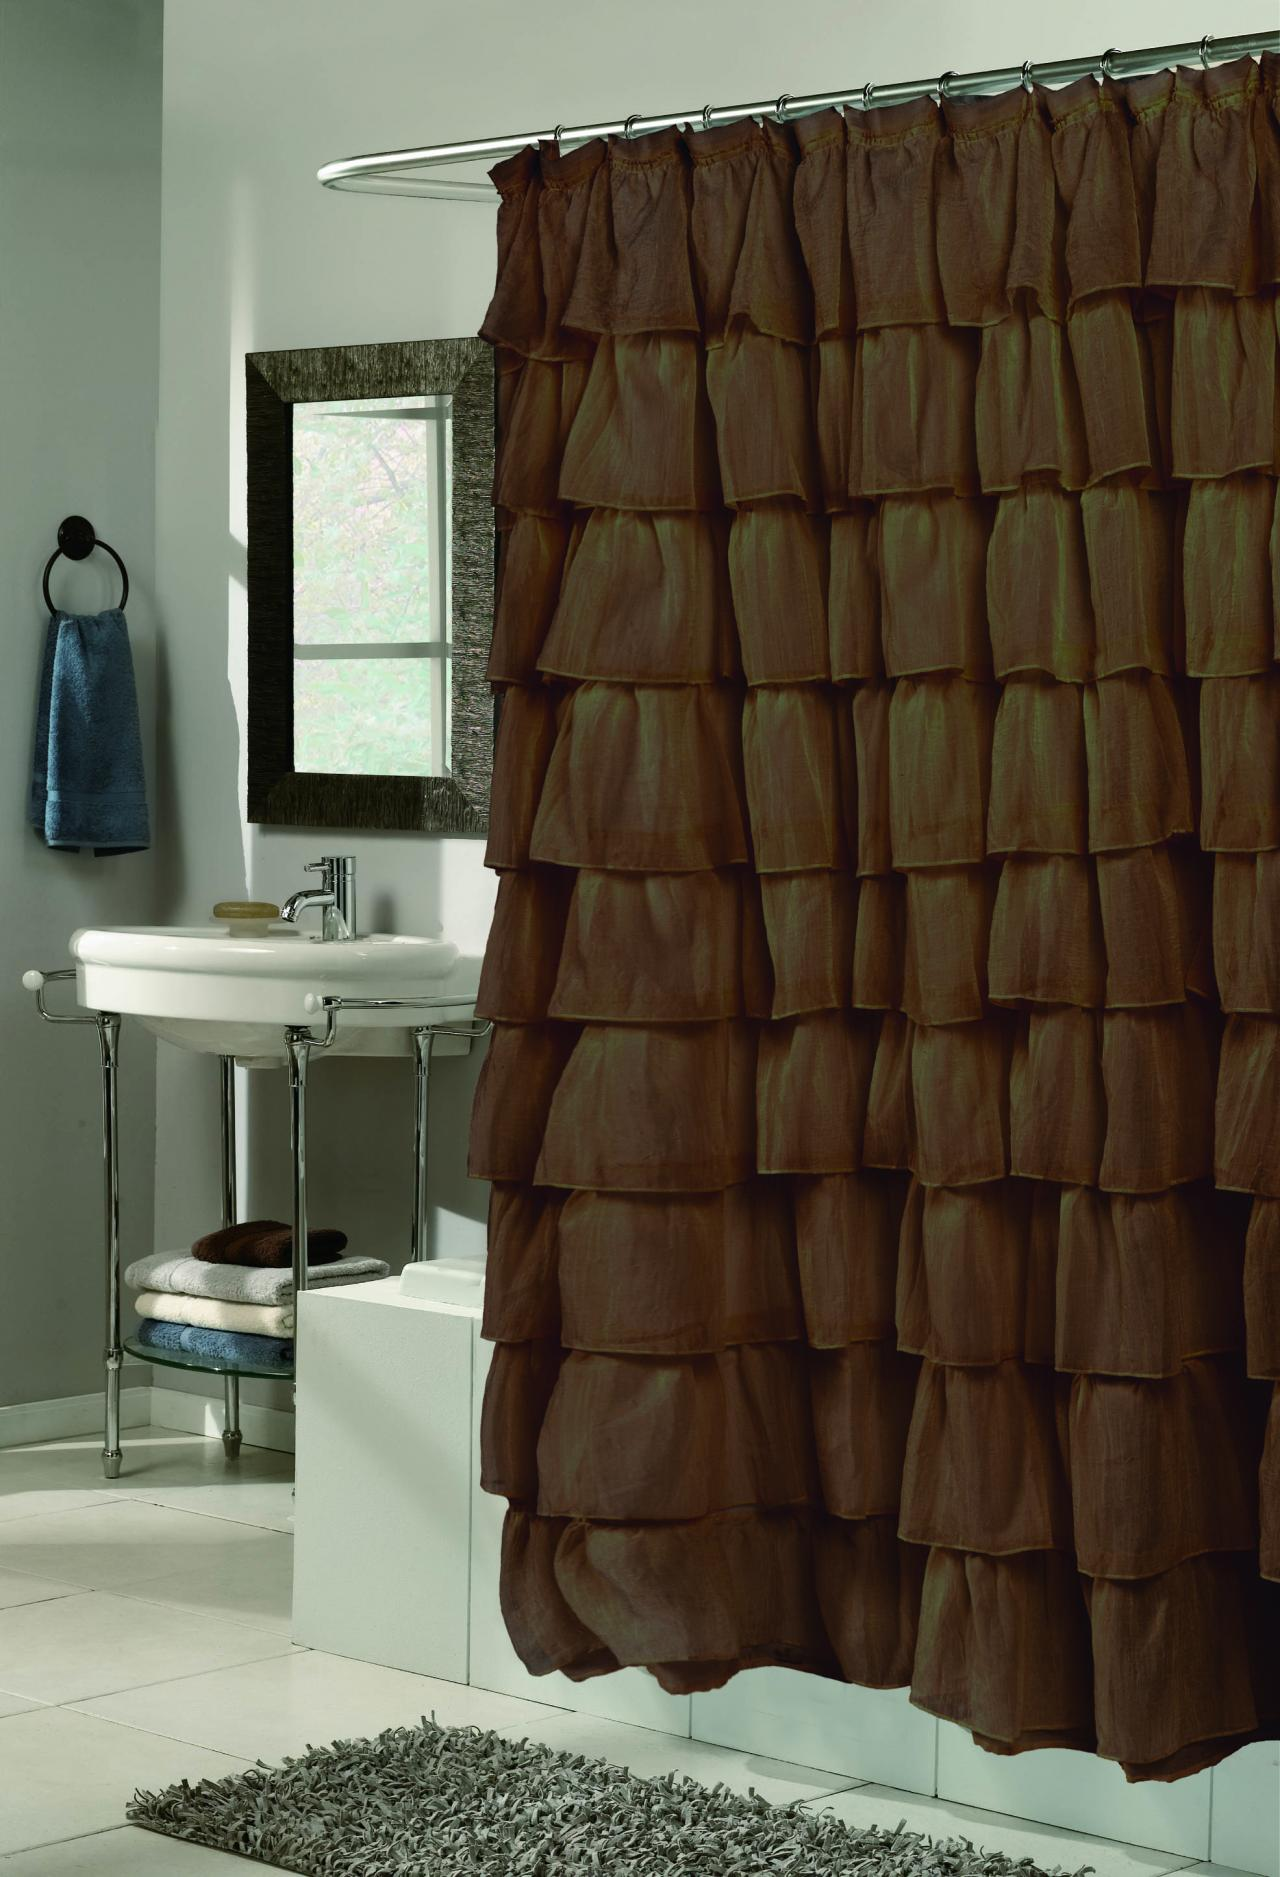 Carnation Home Fashions Inc Carmen Crushed Voile Ruffled Tier Shower Curtains